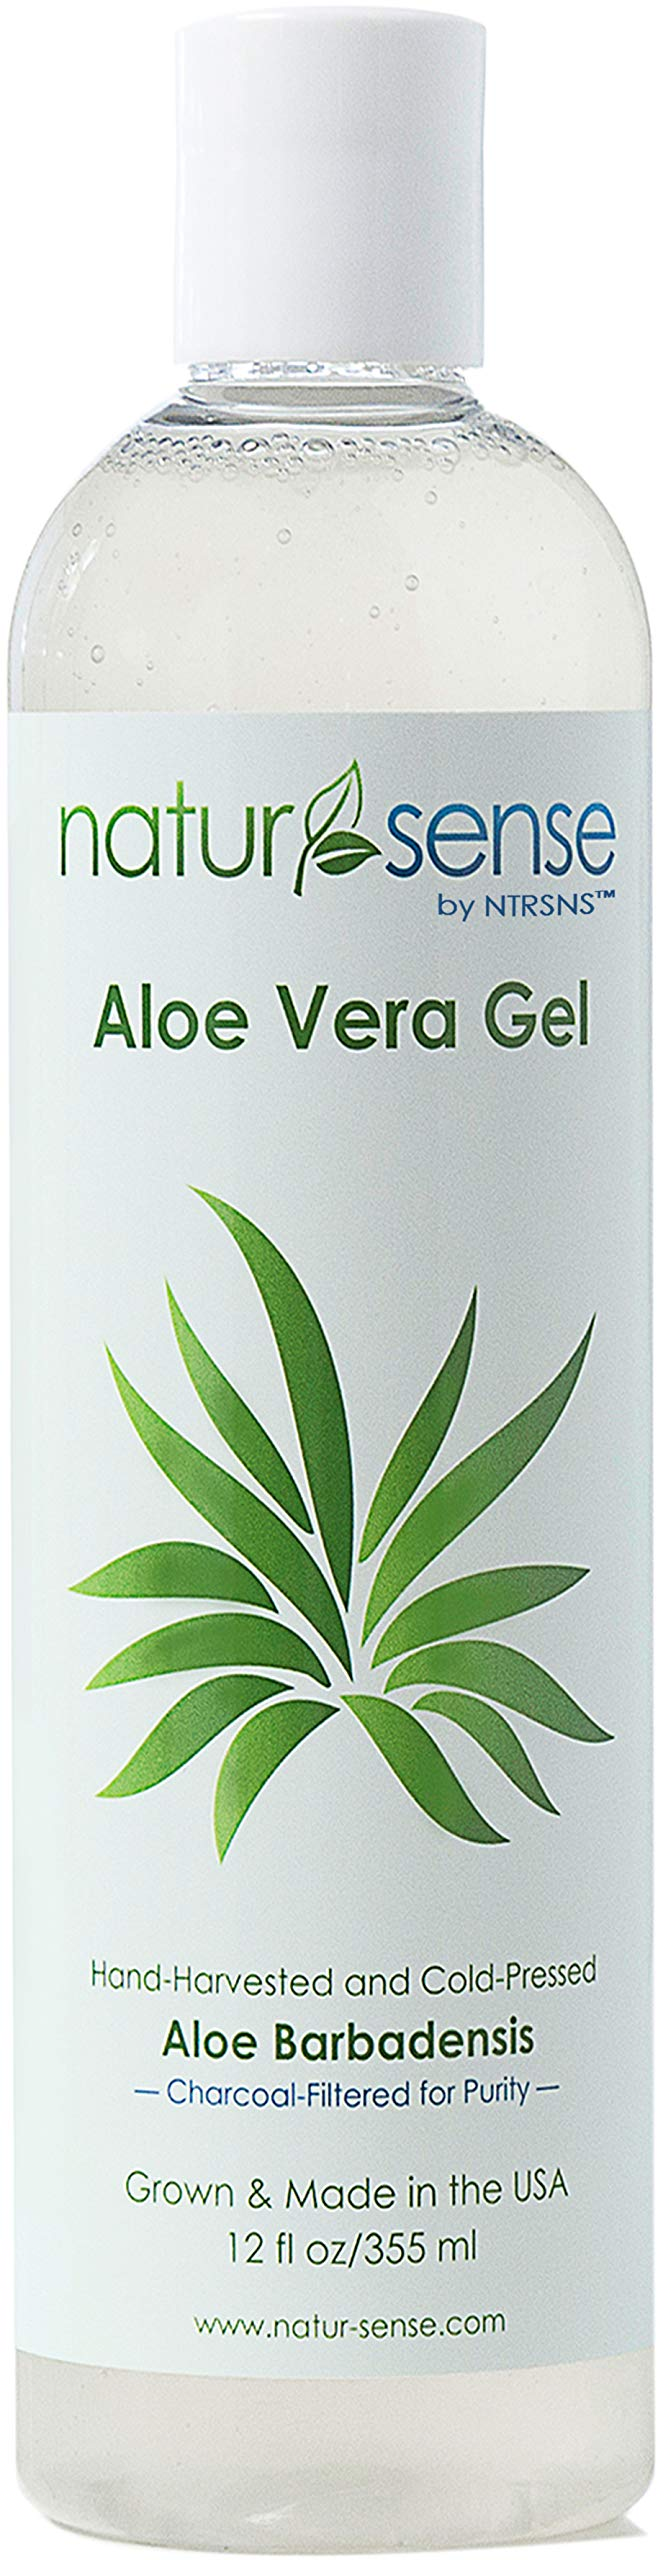 NaturSense Organic Aloe Vera Gel Great for Face, Hair, Sunburn Relief, Parched Summer Skin, Acne, Razor Bumps, Psoriasis, Eczema, Overall Hydration - 12 oz. by NTRSNS